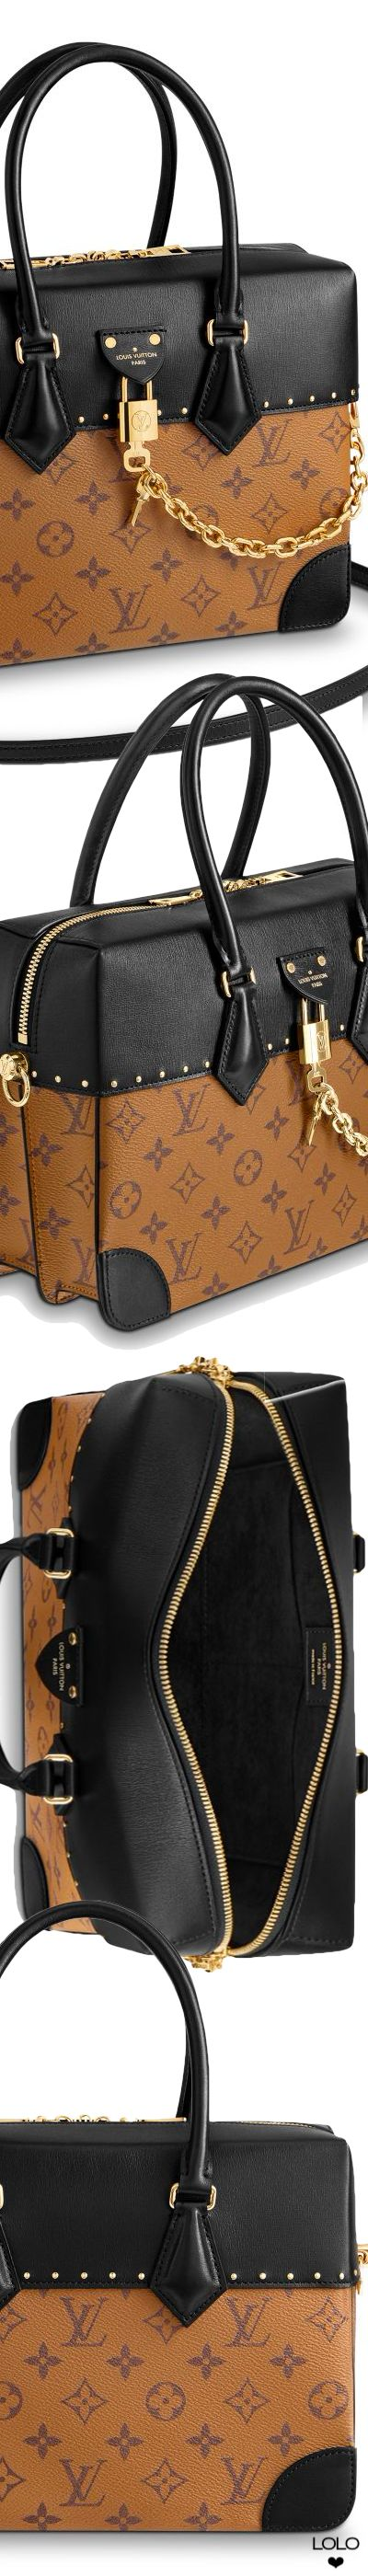 #louisvuitton CITY MALLE MM